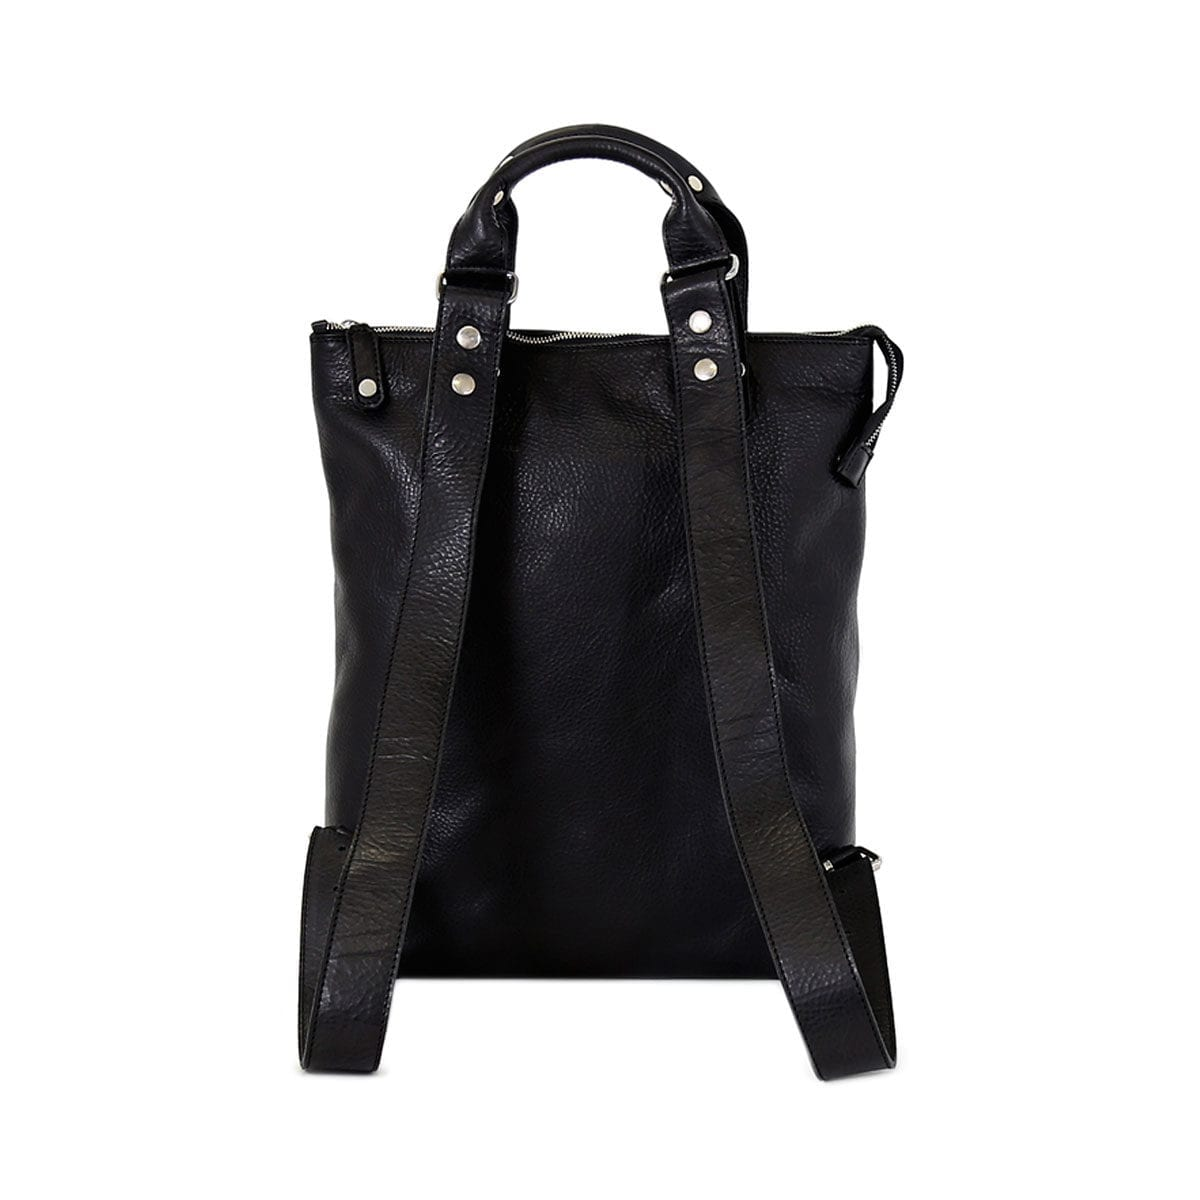 """LUMI Daniel Tote Backpack in black. Wear it on your back or use it as a tote bag, this roomy bag is great for all your urban adventures. It fits a 15"""" laptop and your daily essentials."""